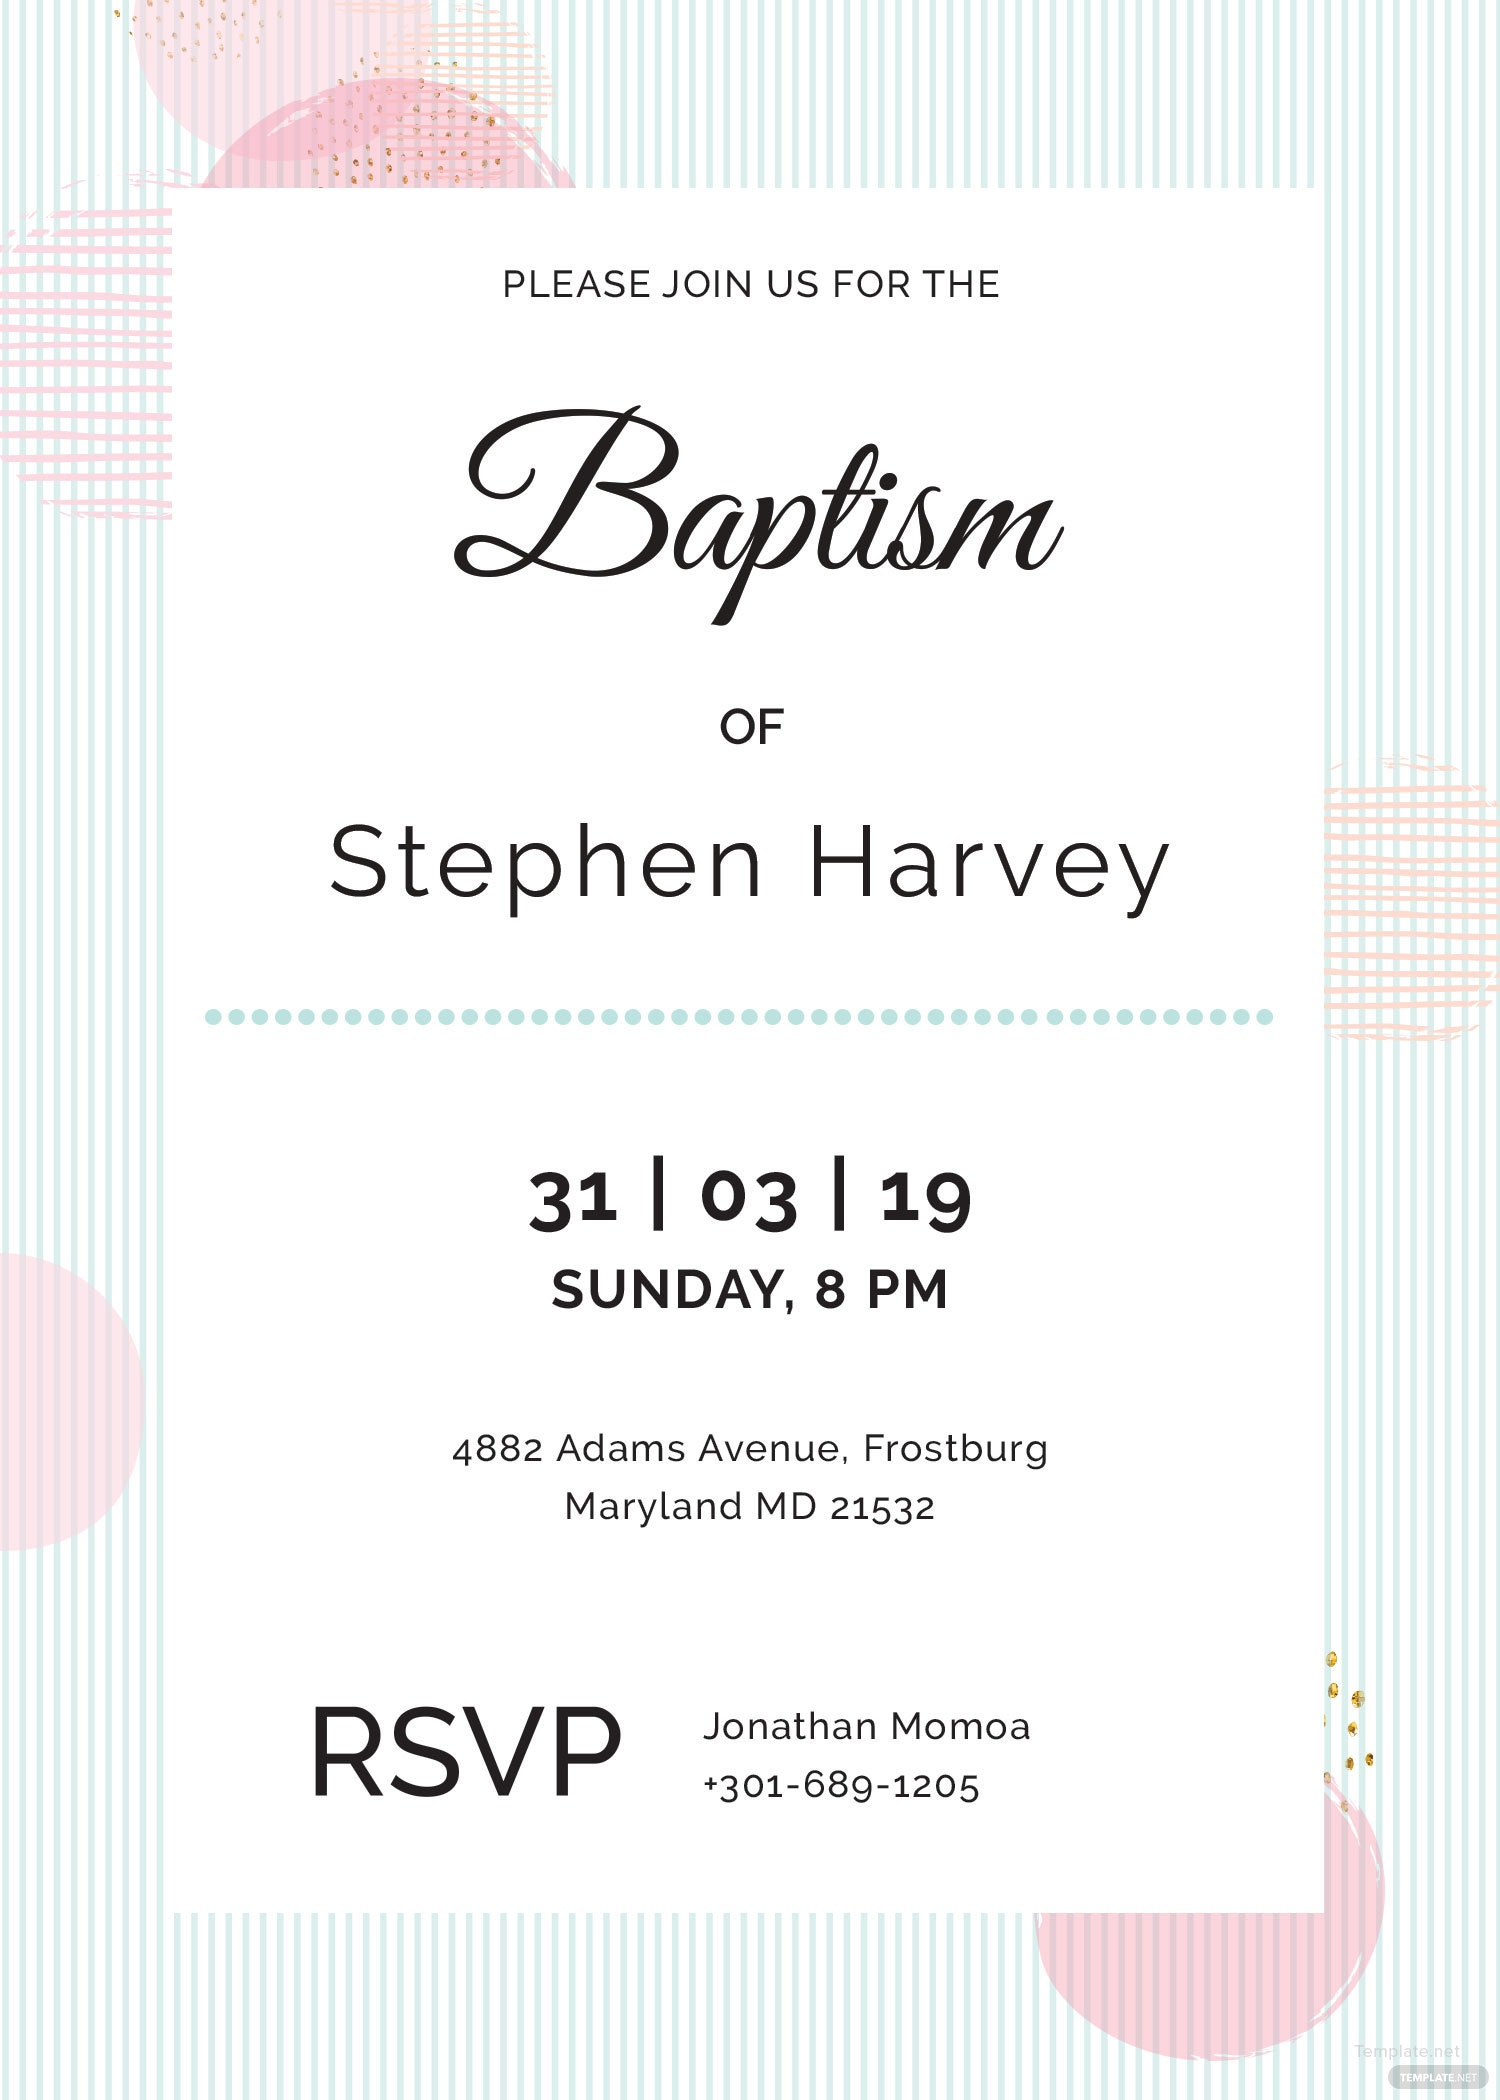 Sample Baptism invitation